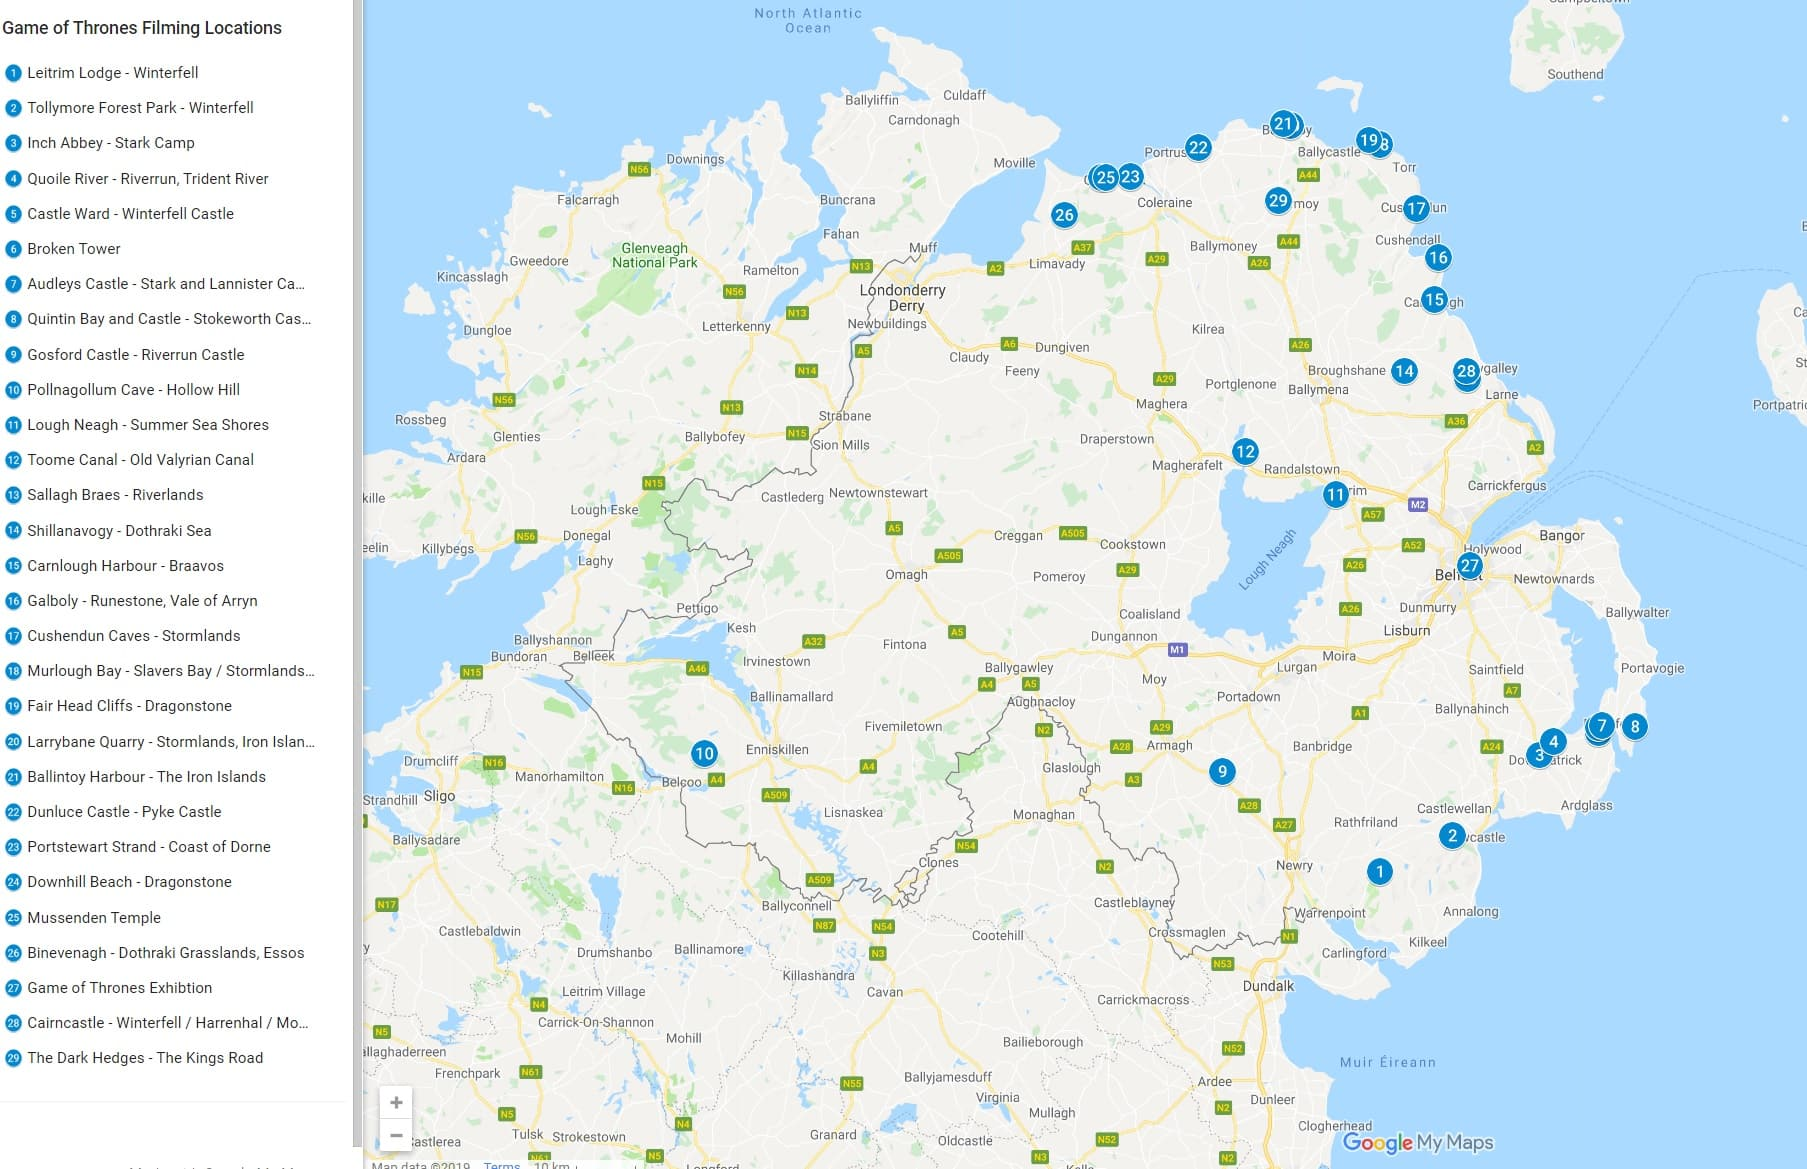 Game of Thrones Northern Ireland filming locations map